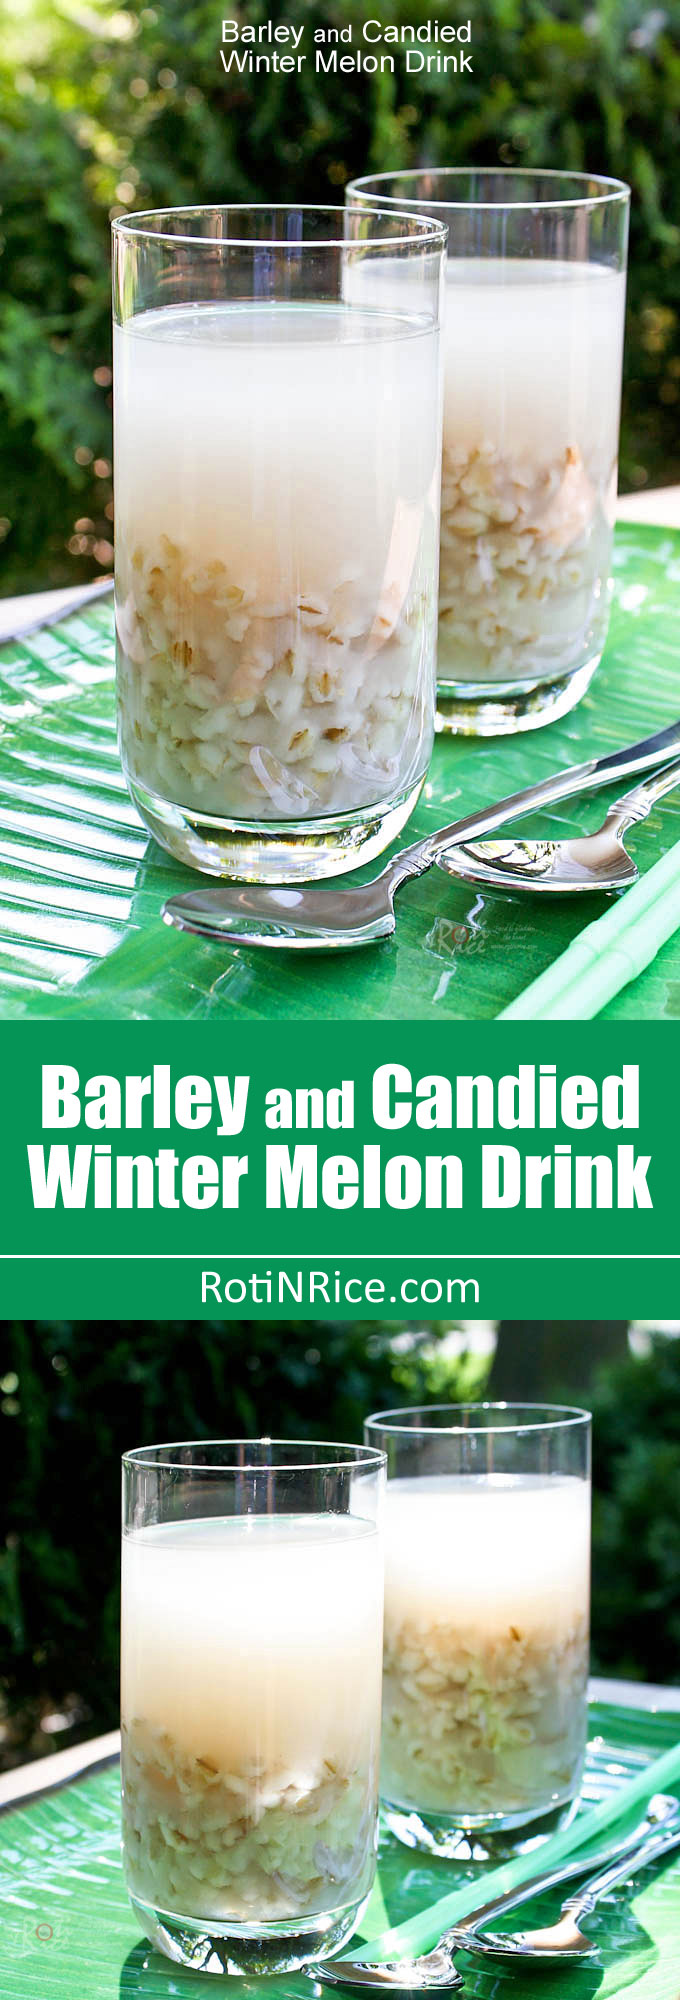 This sweet Barley and Candied Winter Melon Drink is the perfect antidote to hot summer days. Both barley and winter melon are said to have cooling properties. | RotiNRice.com